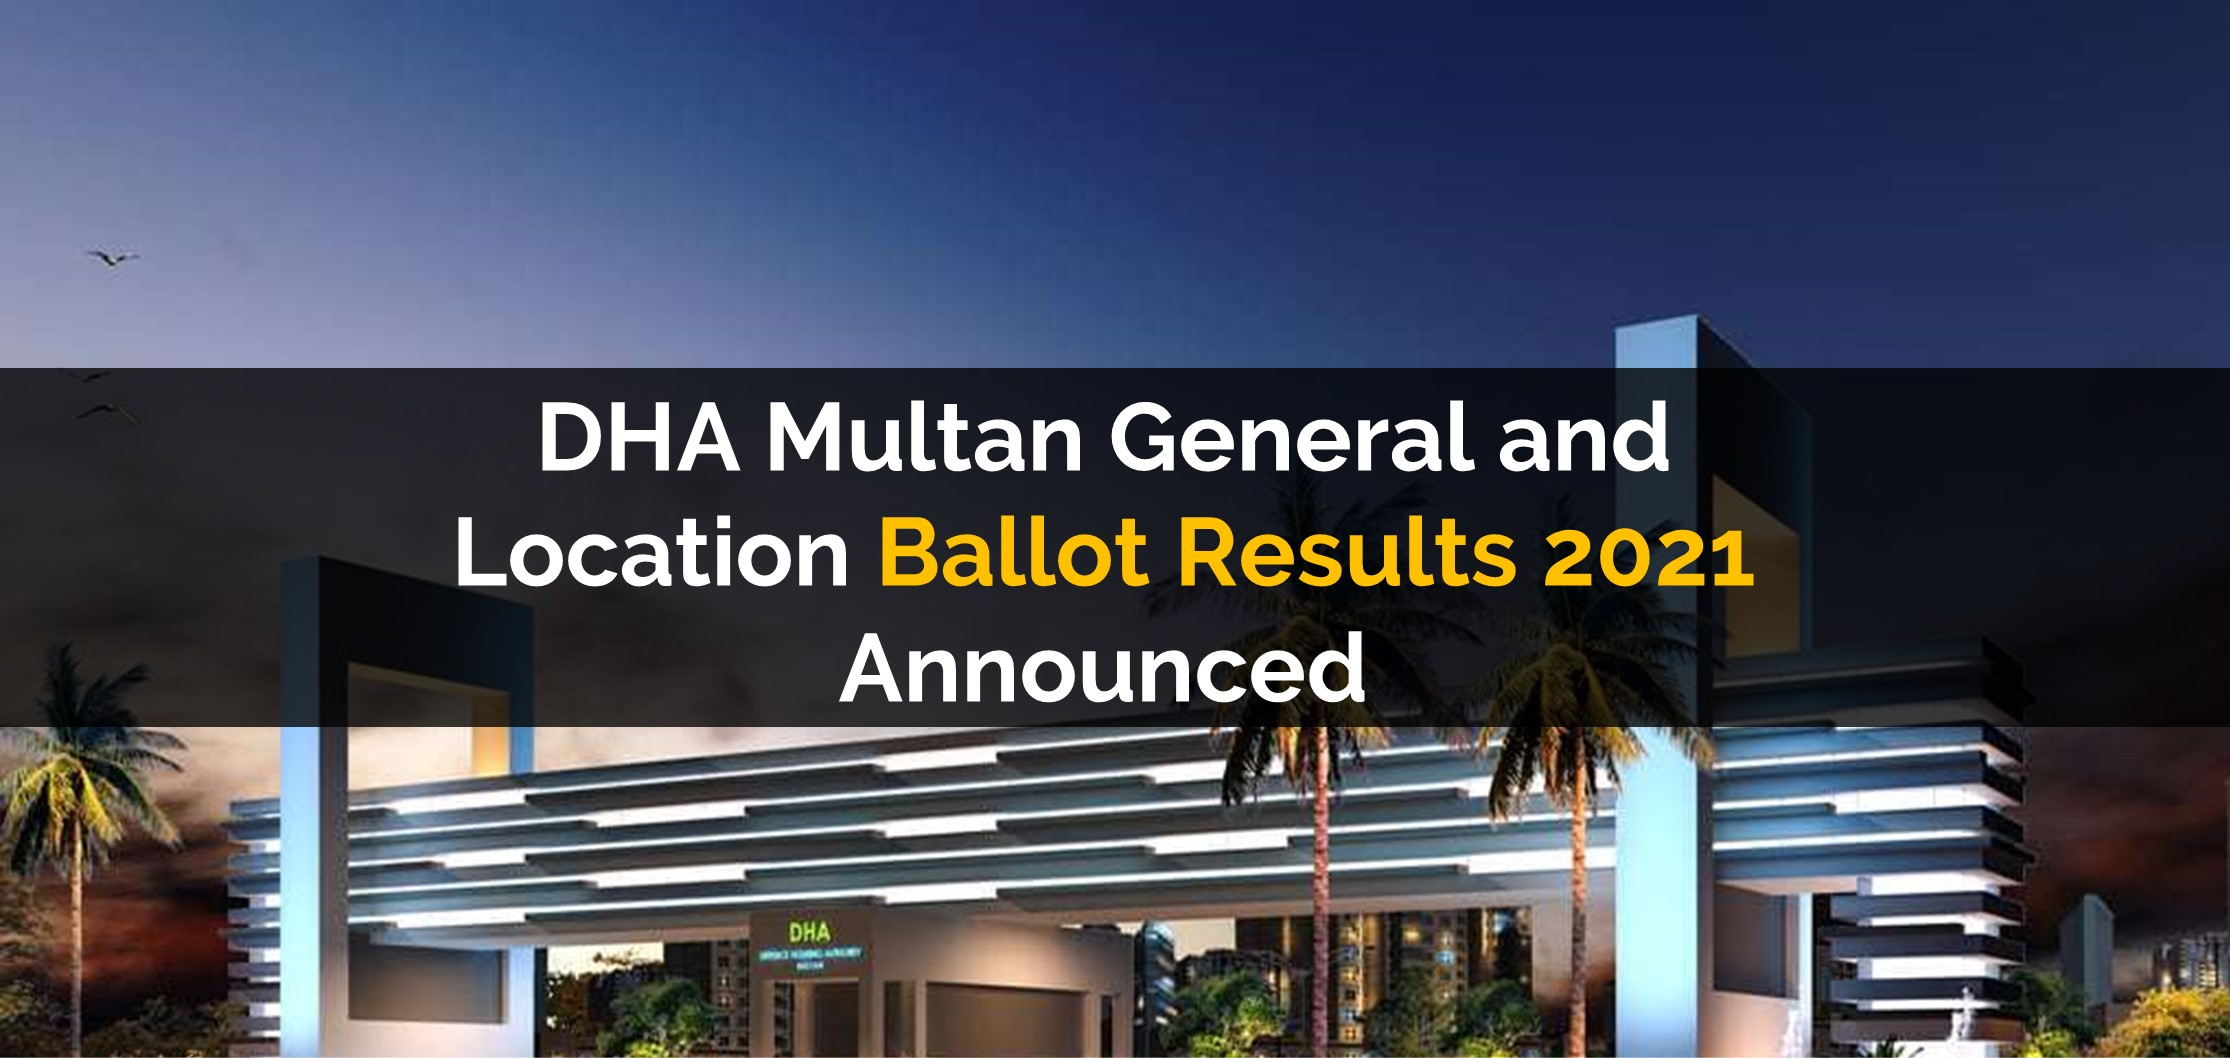 DHA Multan General and Location Ballot Results 2021 Announced